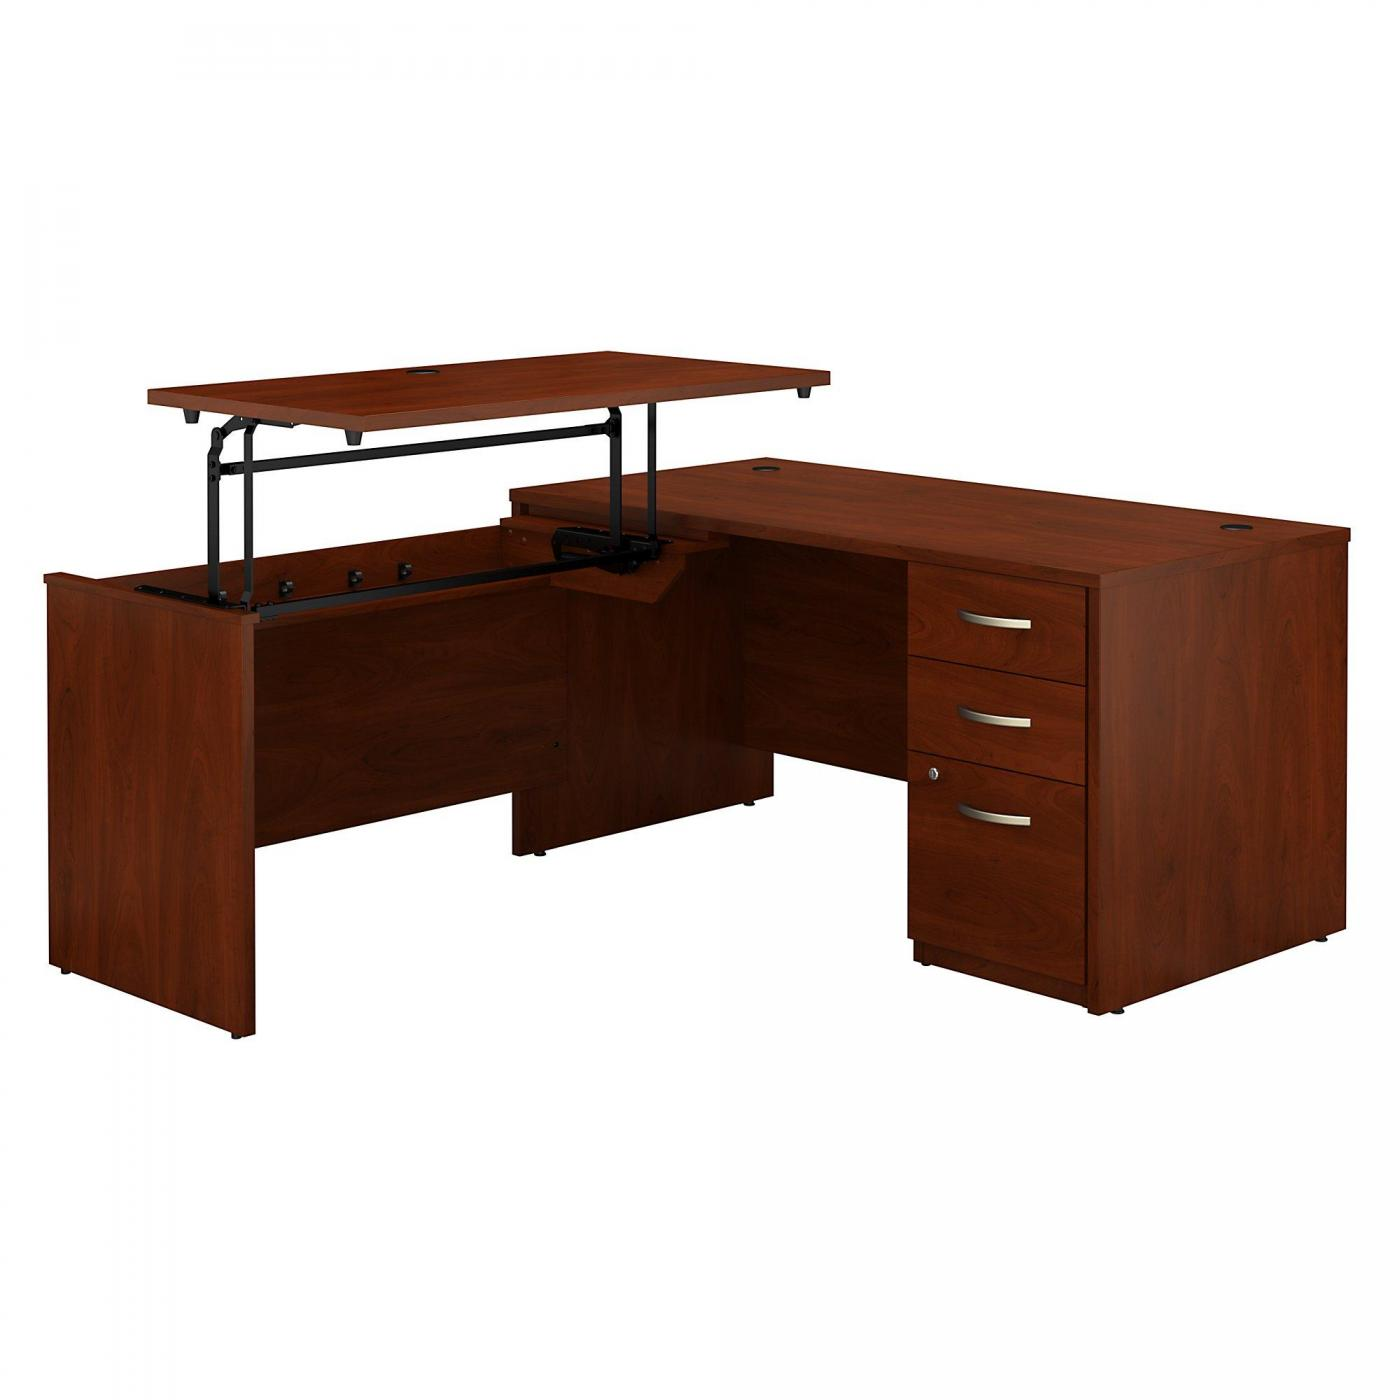 </b></font><b>BUSH BUSINESS FURNITURE SERIES C ELITE 60W X 30D 3 POSITION SIT TO STAND L SHAPED DESK WITH 3 DRAWER FILE CABINET. FREE SHIPPING. VIDEO:</b></font>  VIDEO BELOW. <p>RATING:&#11088;&#11088;&#11088;&#11088;&#11088;</b></font></b>